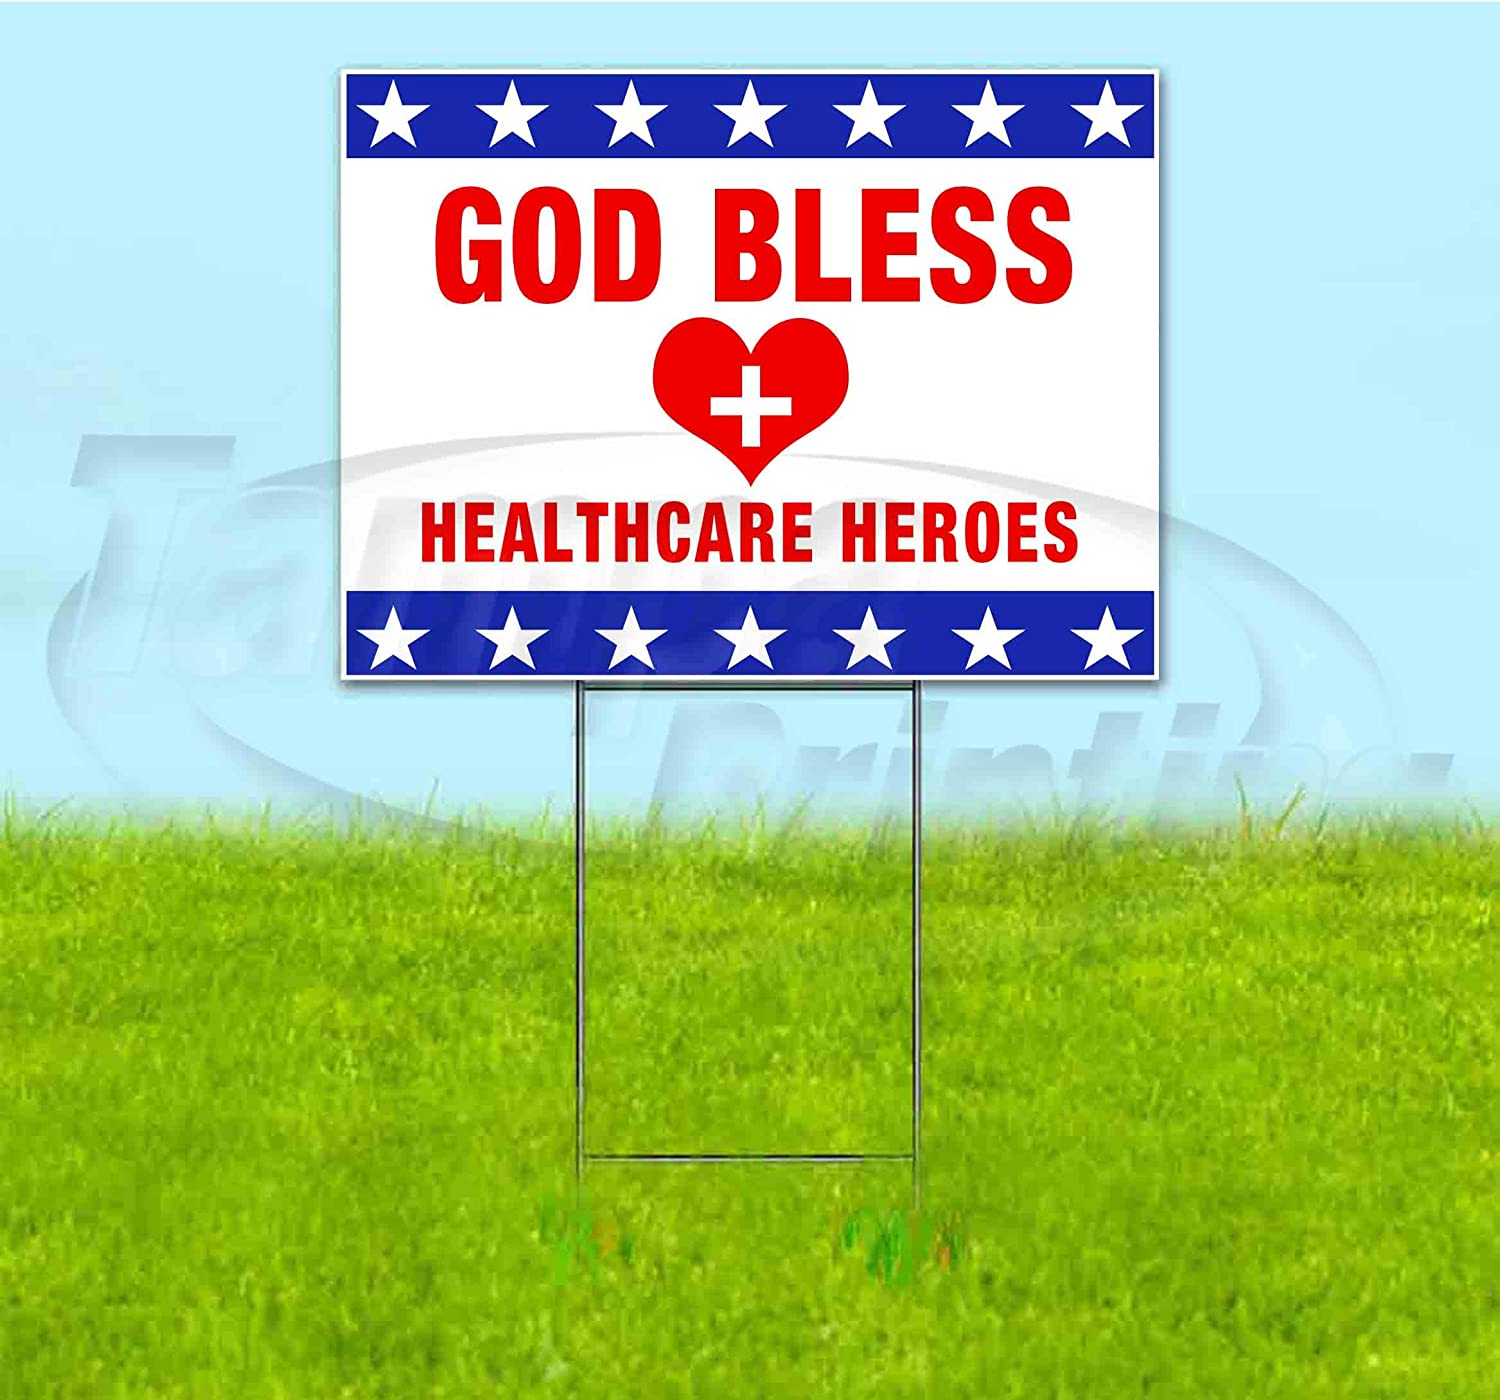 Lawn Decorations Bandit Corrugated Plastic Yard Sign God Bless Healthcare Heroes USA New 18x24 Advertising